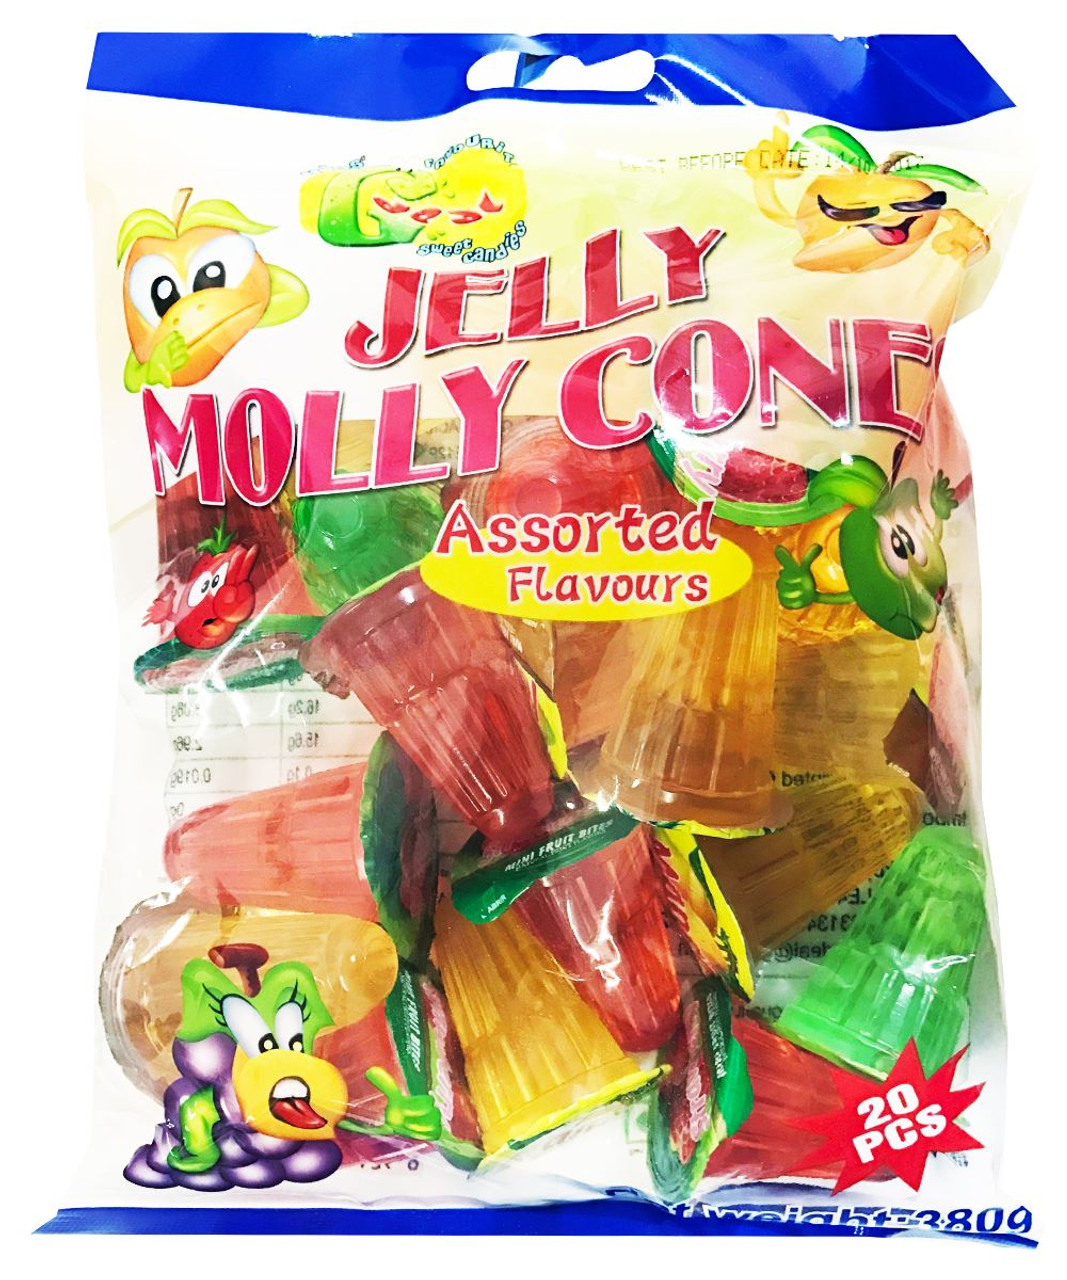 Jelly Molly - Jelly Cones (Assorted Flavours) - 380g (20pcs)